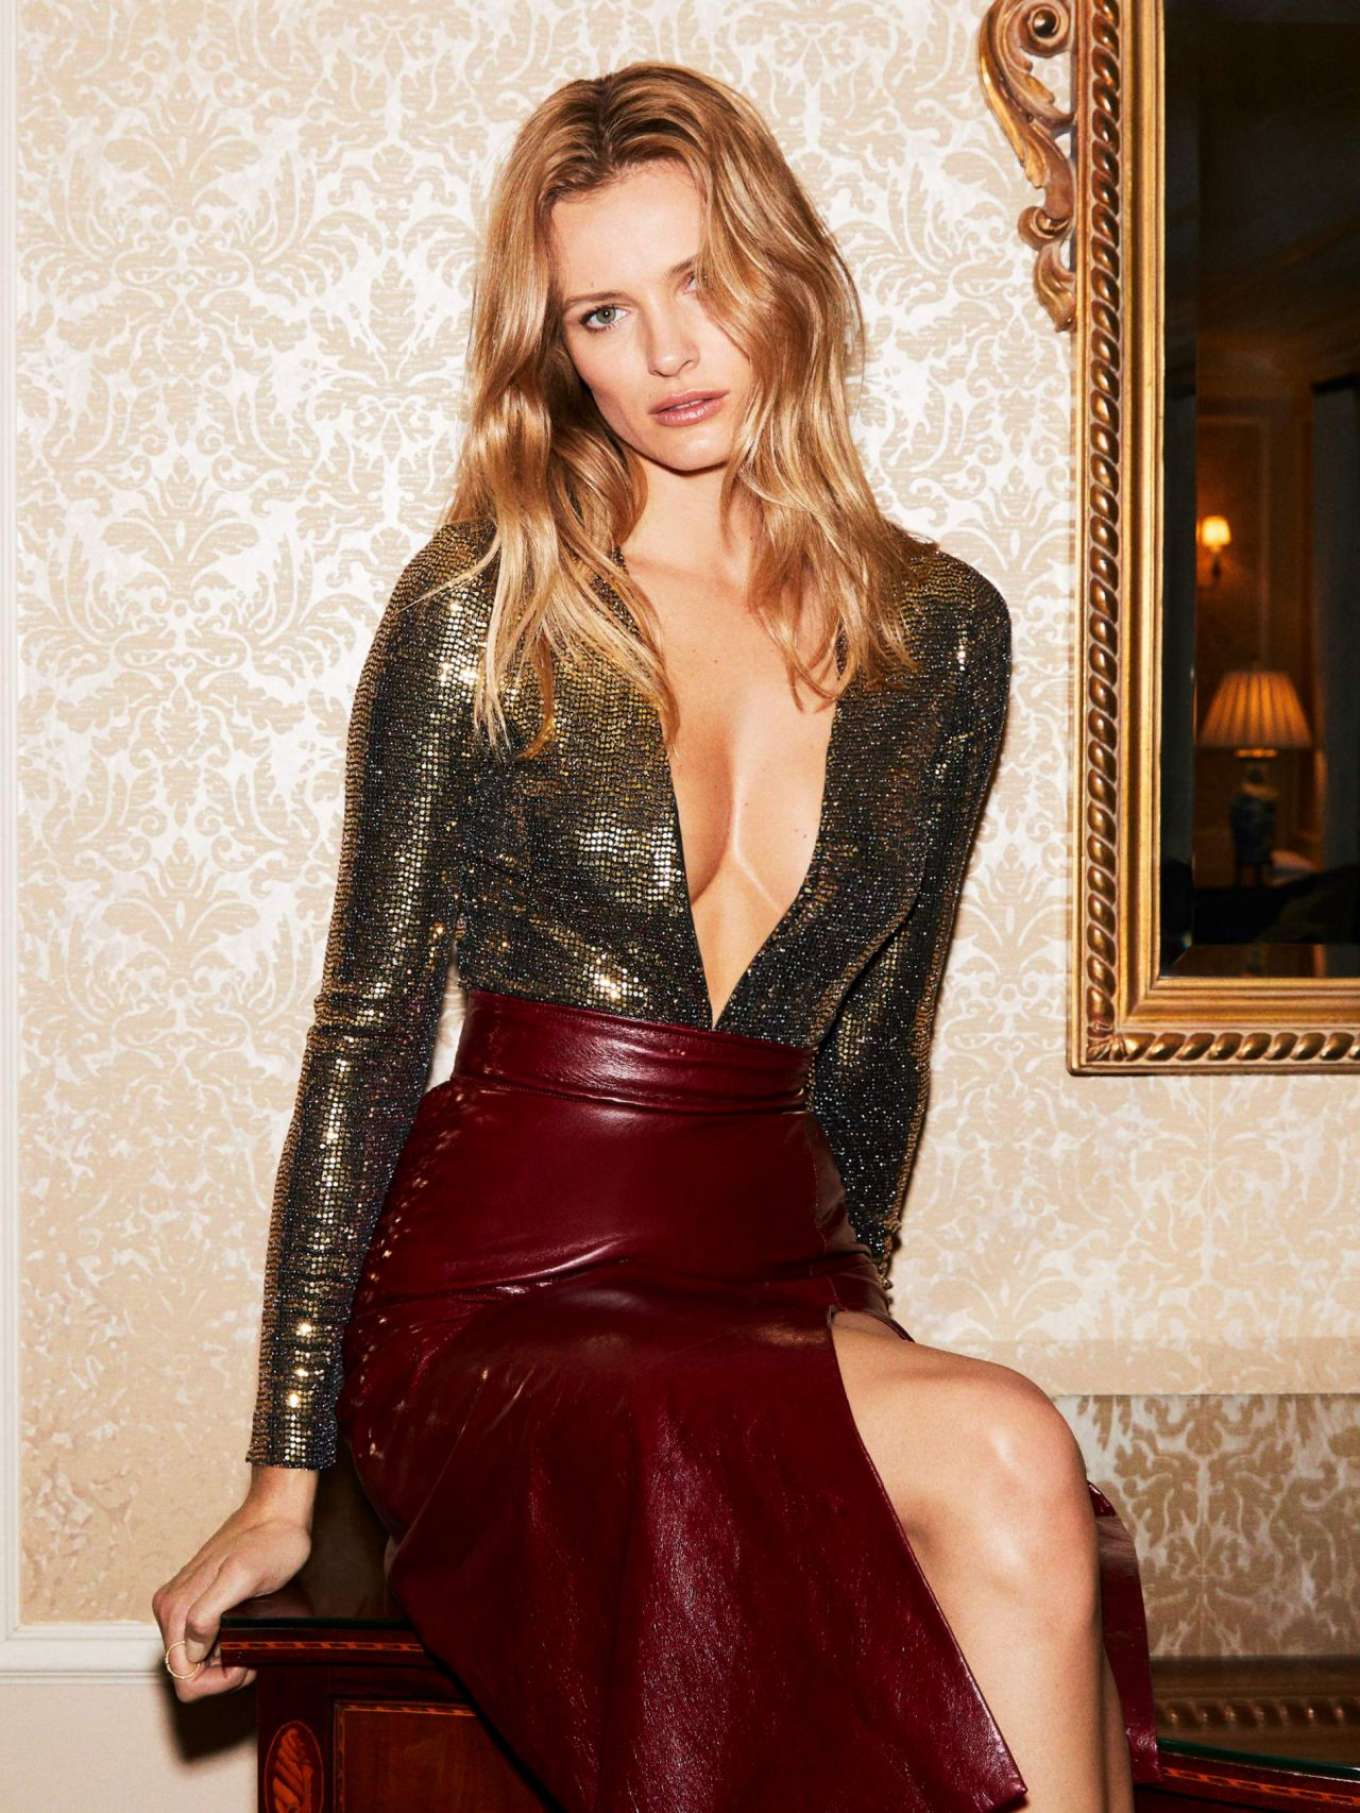 Edita Vilkeviciute - The Edit by Net-A-Porter (February 2020 issue)